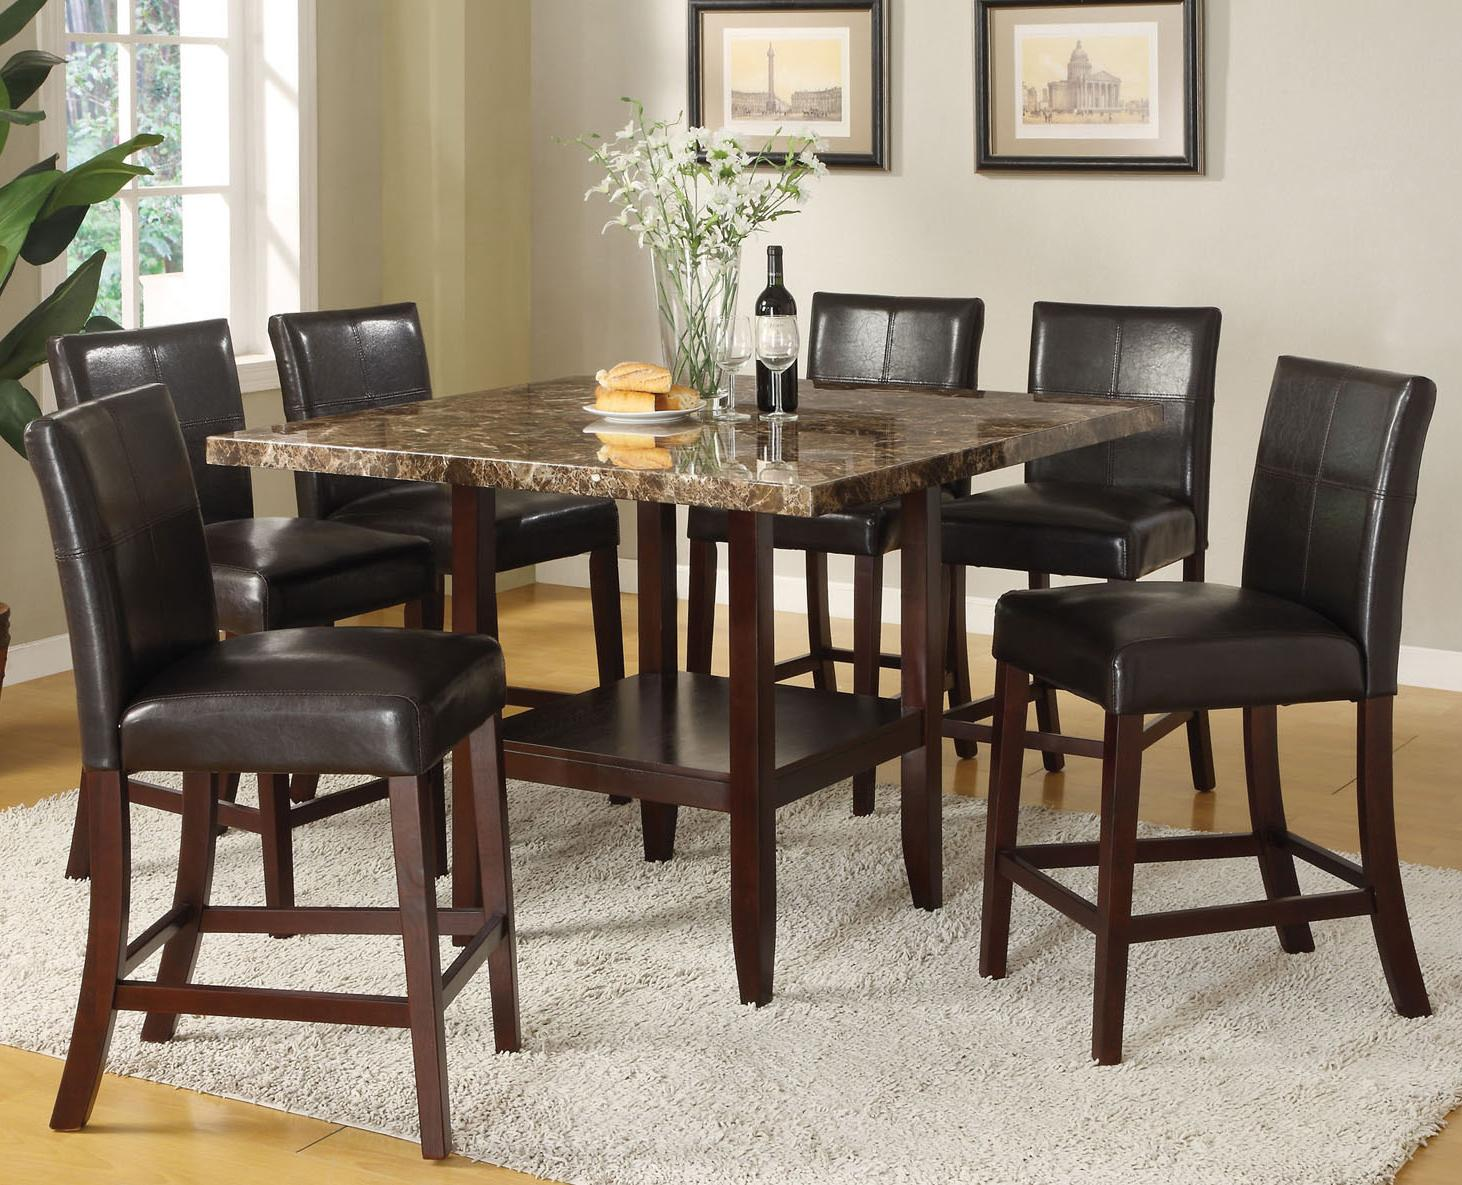 Acme furniture idris 7 piece counter height dining set for Square dinette sets